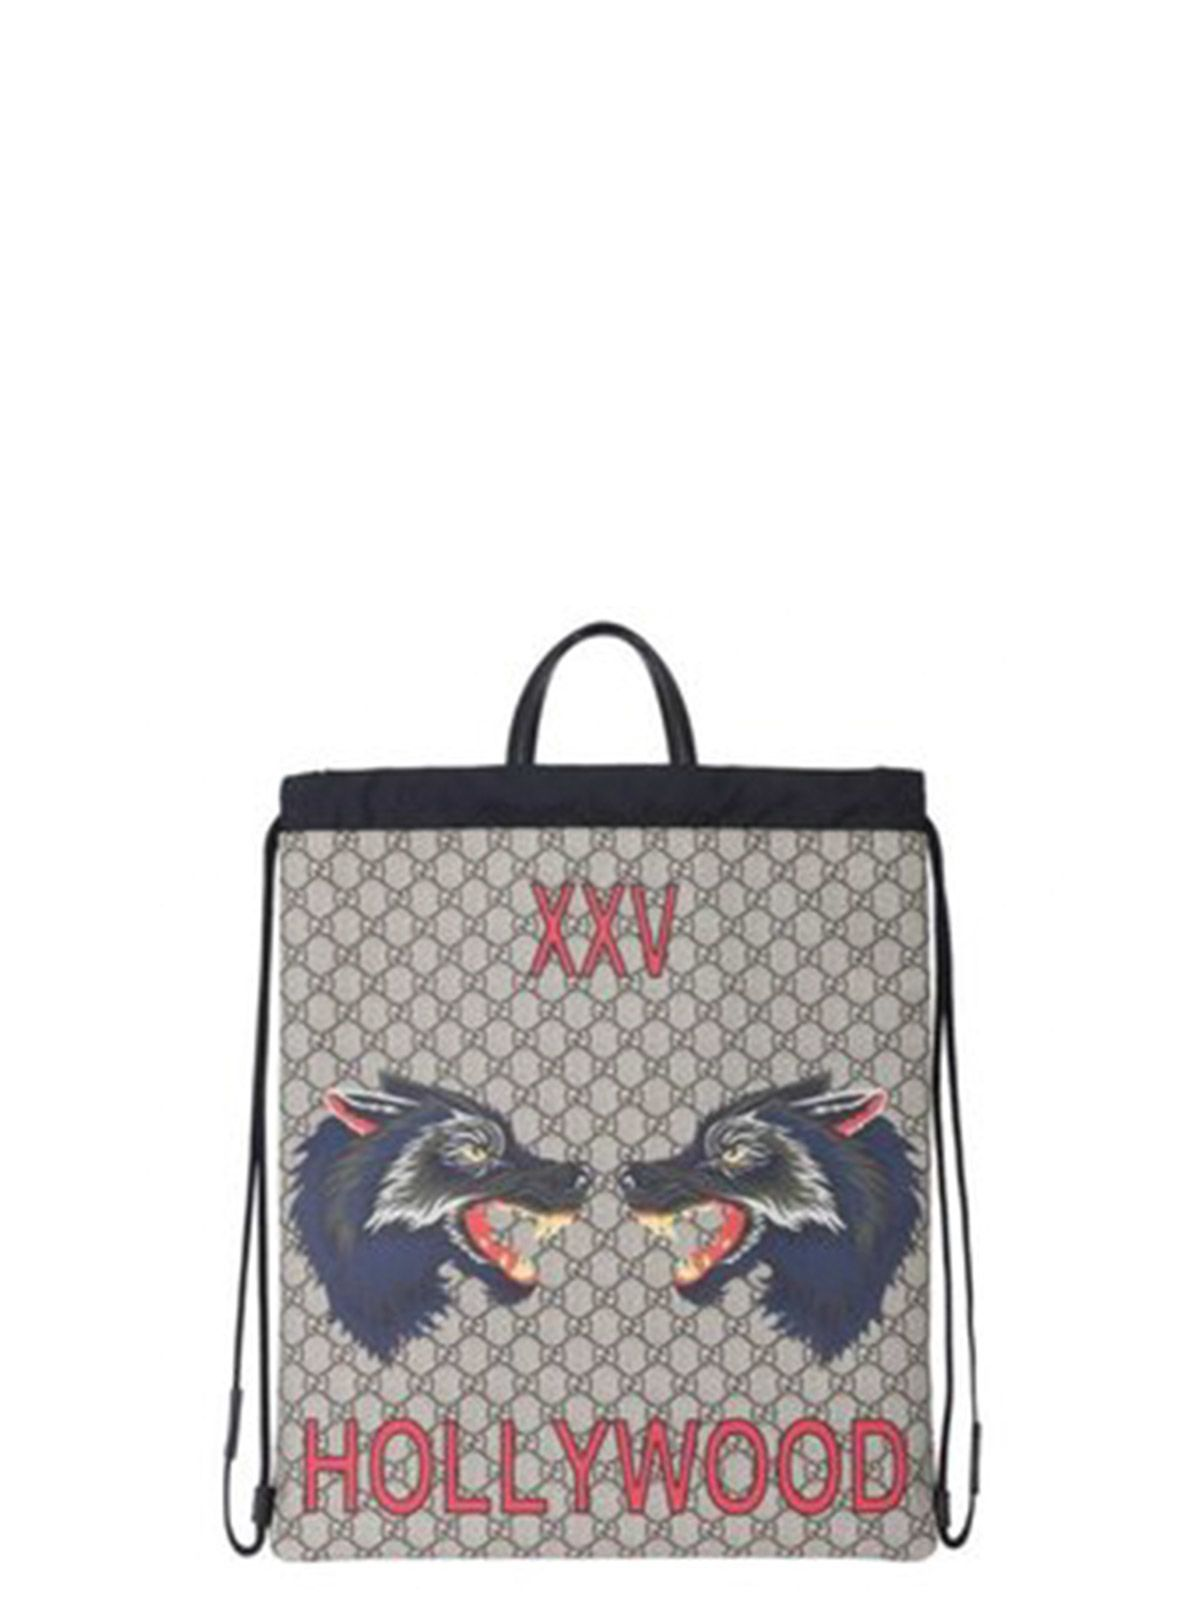 deeb840c7ce4 Gucci Printed Gg Supreme Drawstring Backpack In Nude & Neutrals ...